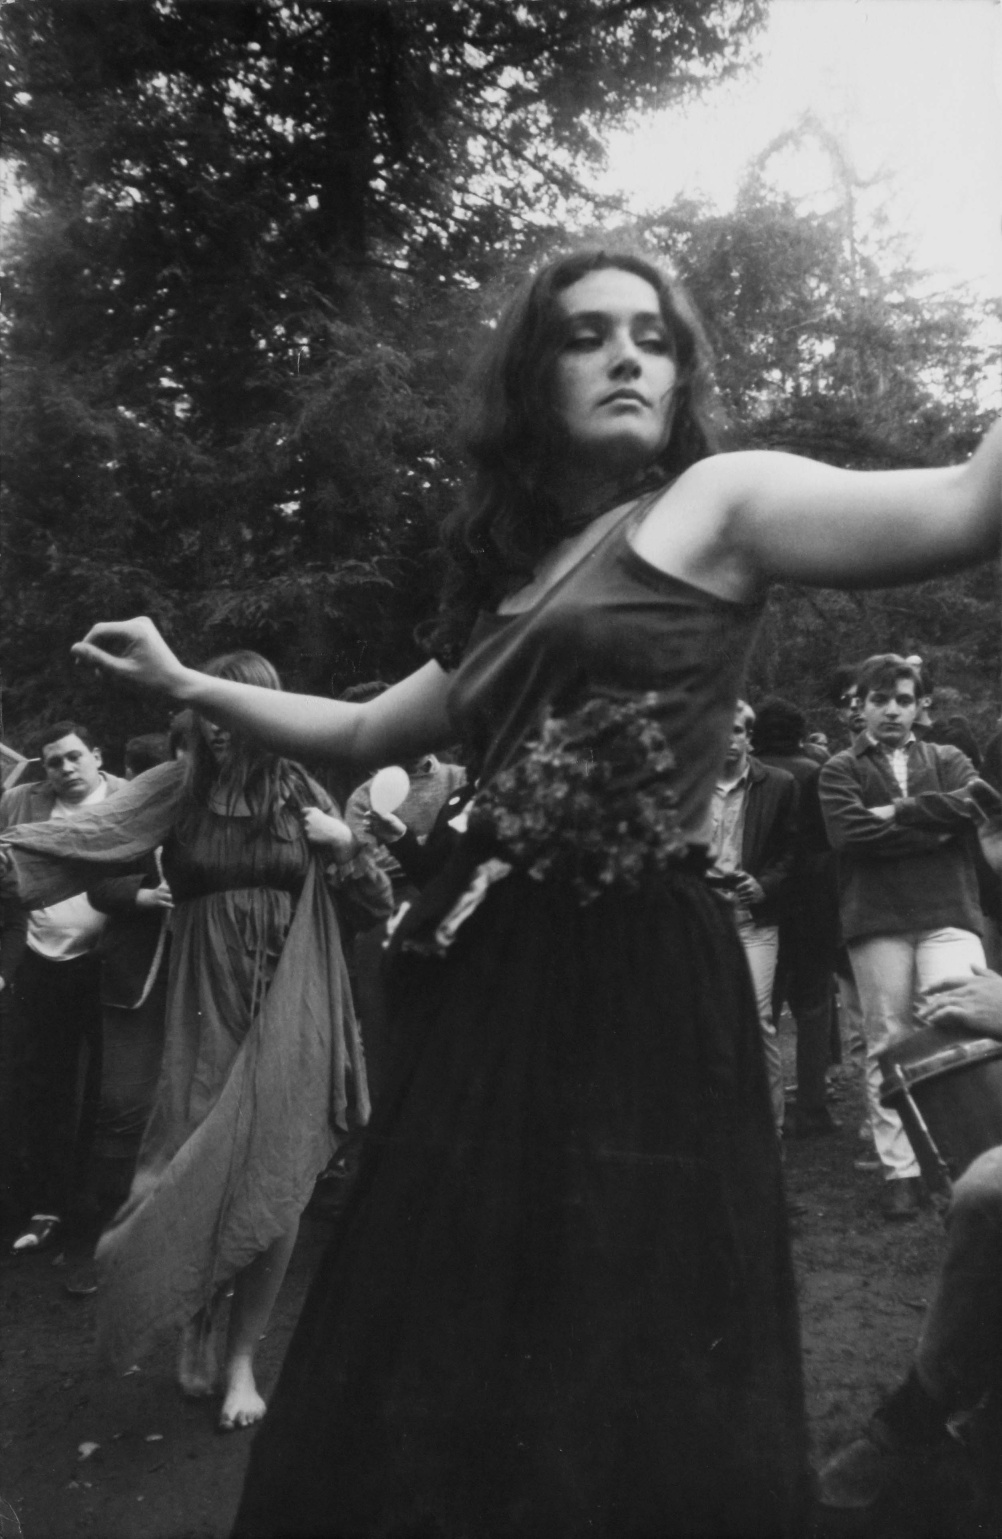 Dennis Hopper Untitled (Hippie Girl Dancing), 1967 Photograph, 34.29 x 23.37 cm The Hopper Art Trust